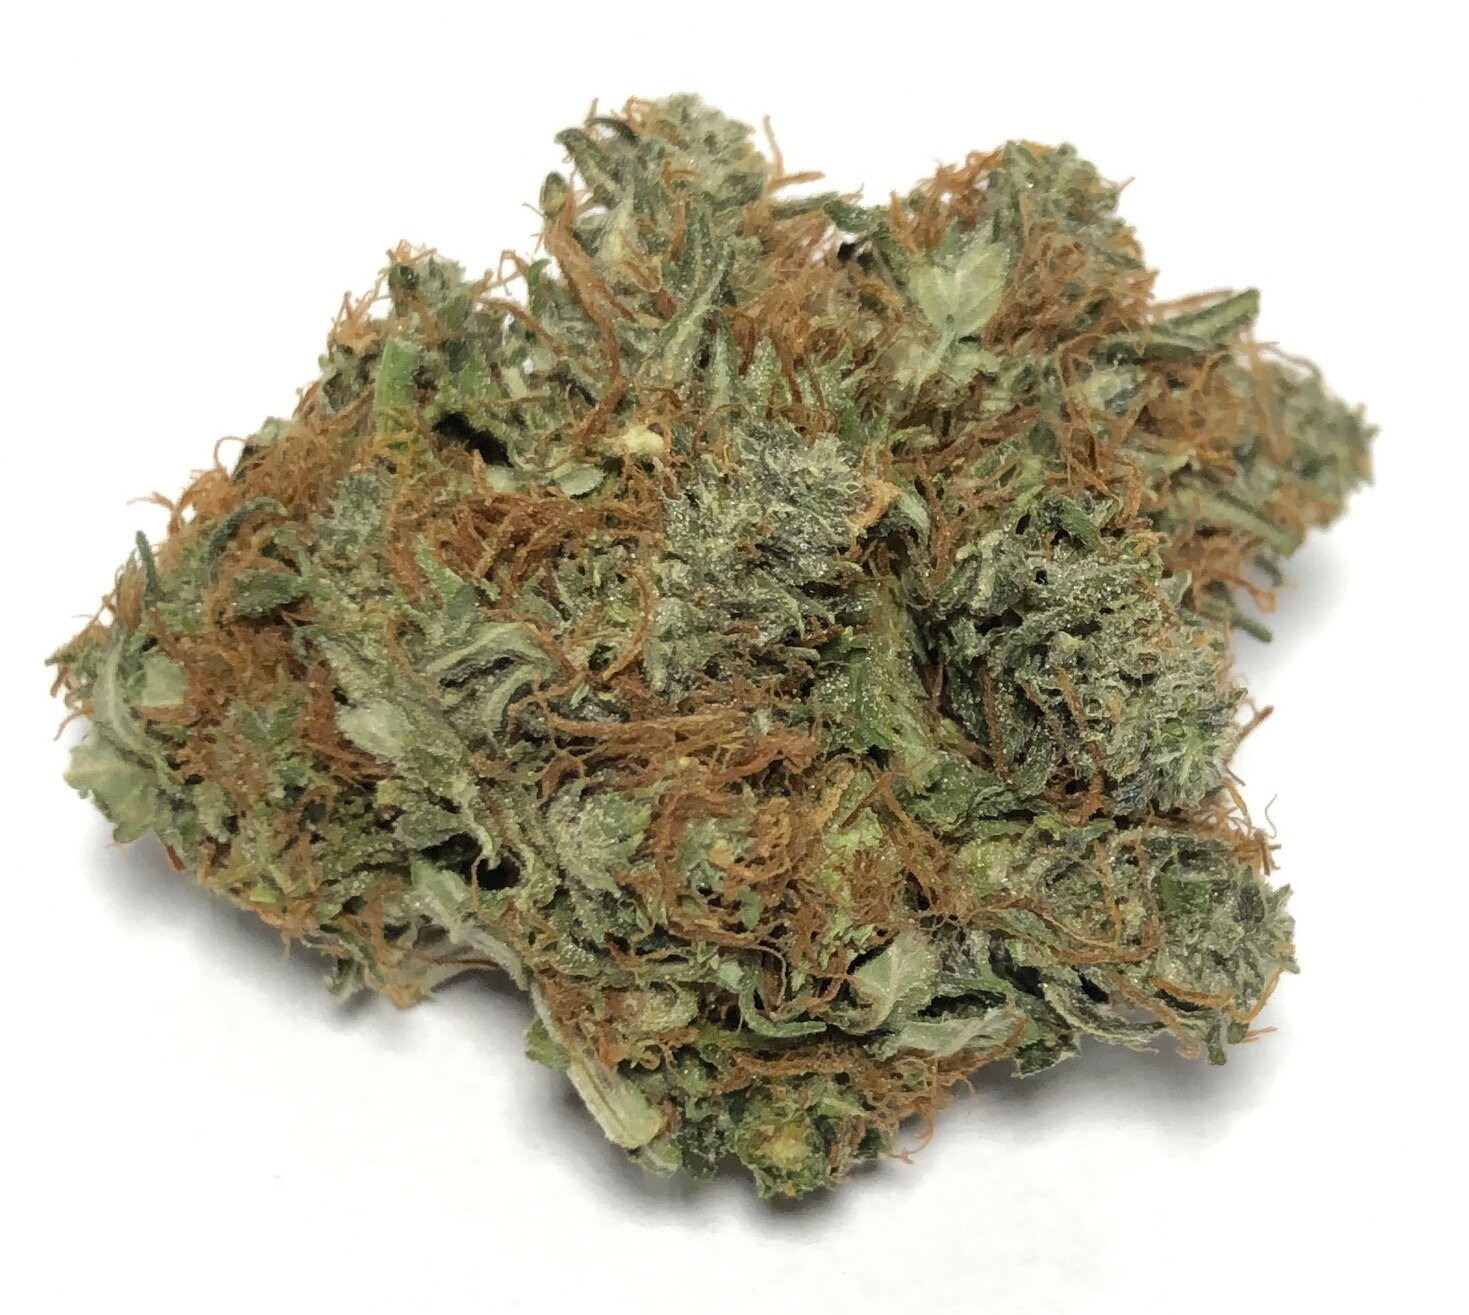 Earth OG- Hybrid    1/4- $65 1/2-$110 OZ-$200   A combination of Sour Diesel and Ghost OG, Earth OG is a cerebrally-focused hybrid with stimulating and happy effects. As its name suggests, this strain has a pleasant, earthy aroma with sour lemon undertones. Earth OG effects are enjoyable for introverts and extroverts alike: an introspective, creative buzz makes this strain good for solo sessions, but social environments may also bring out its energetic, talkative qualities. Depression, stress, and anxiety stand little chance against Earth OGs uplifted mindset, and patients treating appetite loss and nausea may also benefit from its potent therapeutic effects.